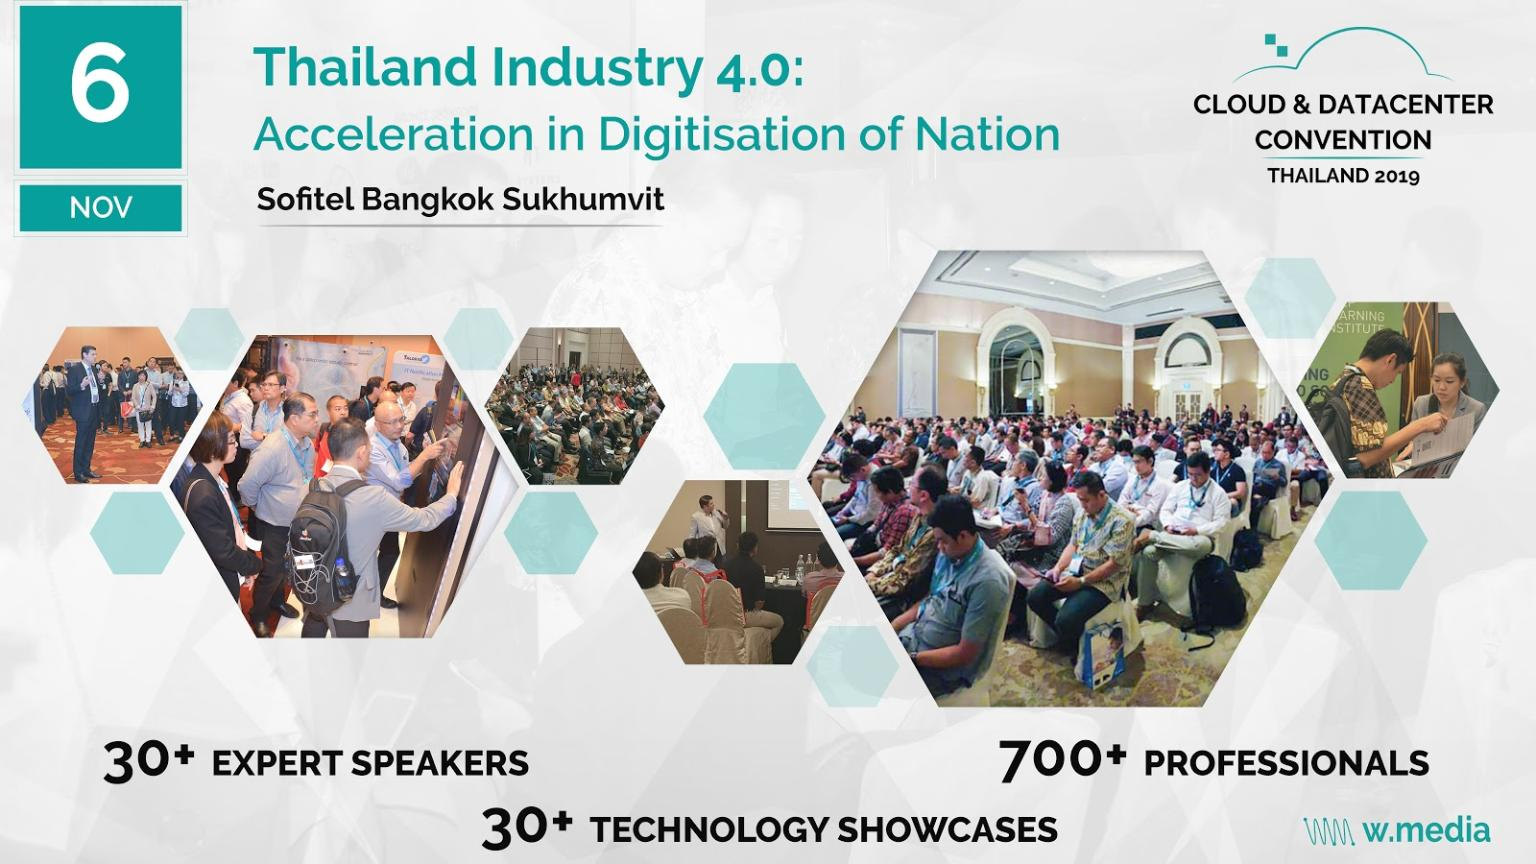 Cloud & Datacenter Convention Thailand2019 1